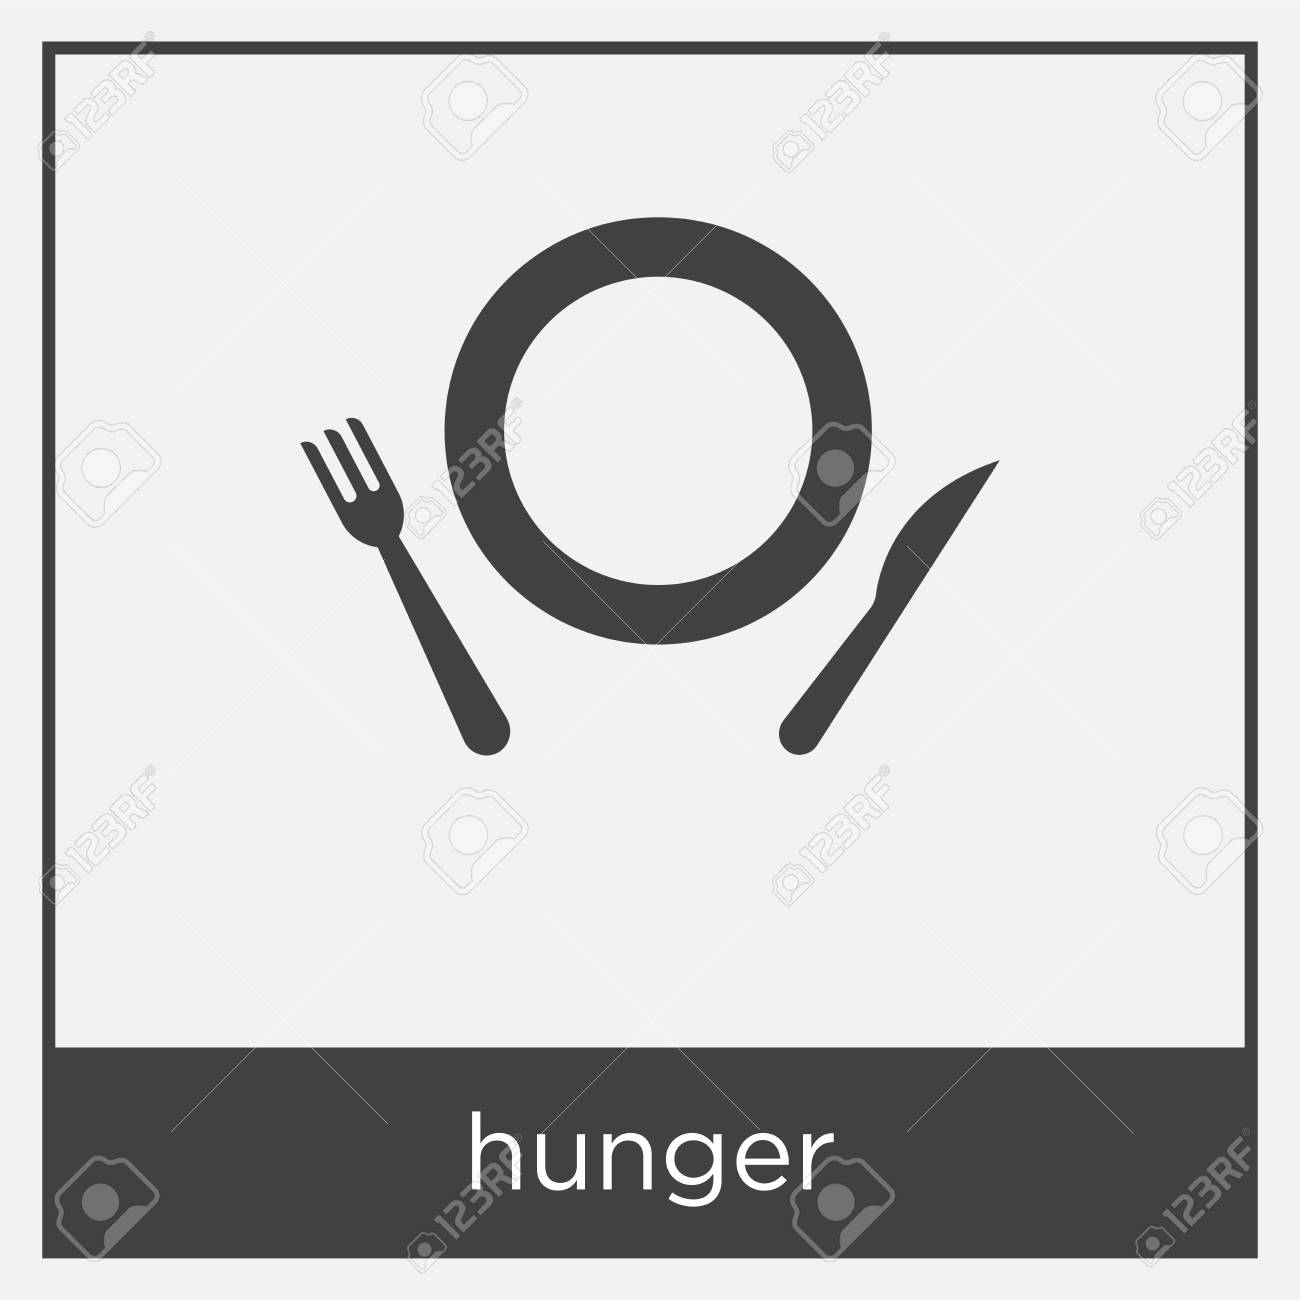 Hunger Icon Isolated On White Background With Black Border Royalty